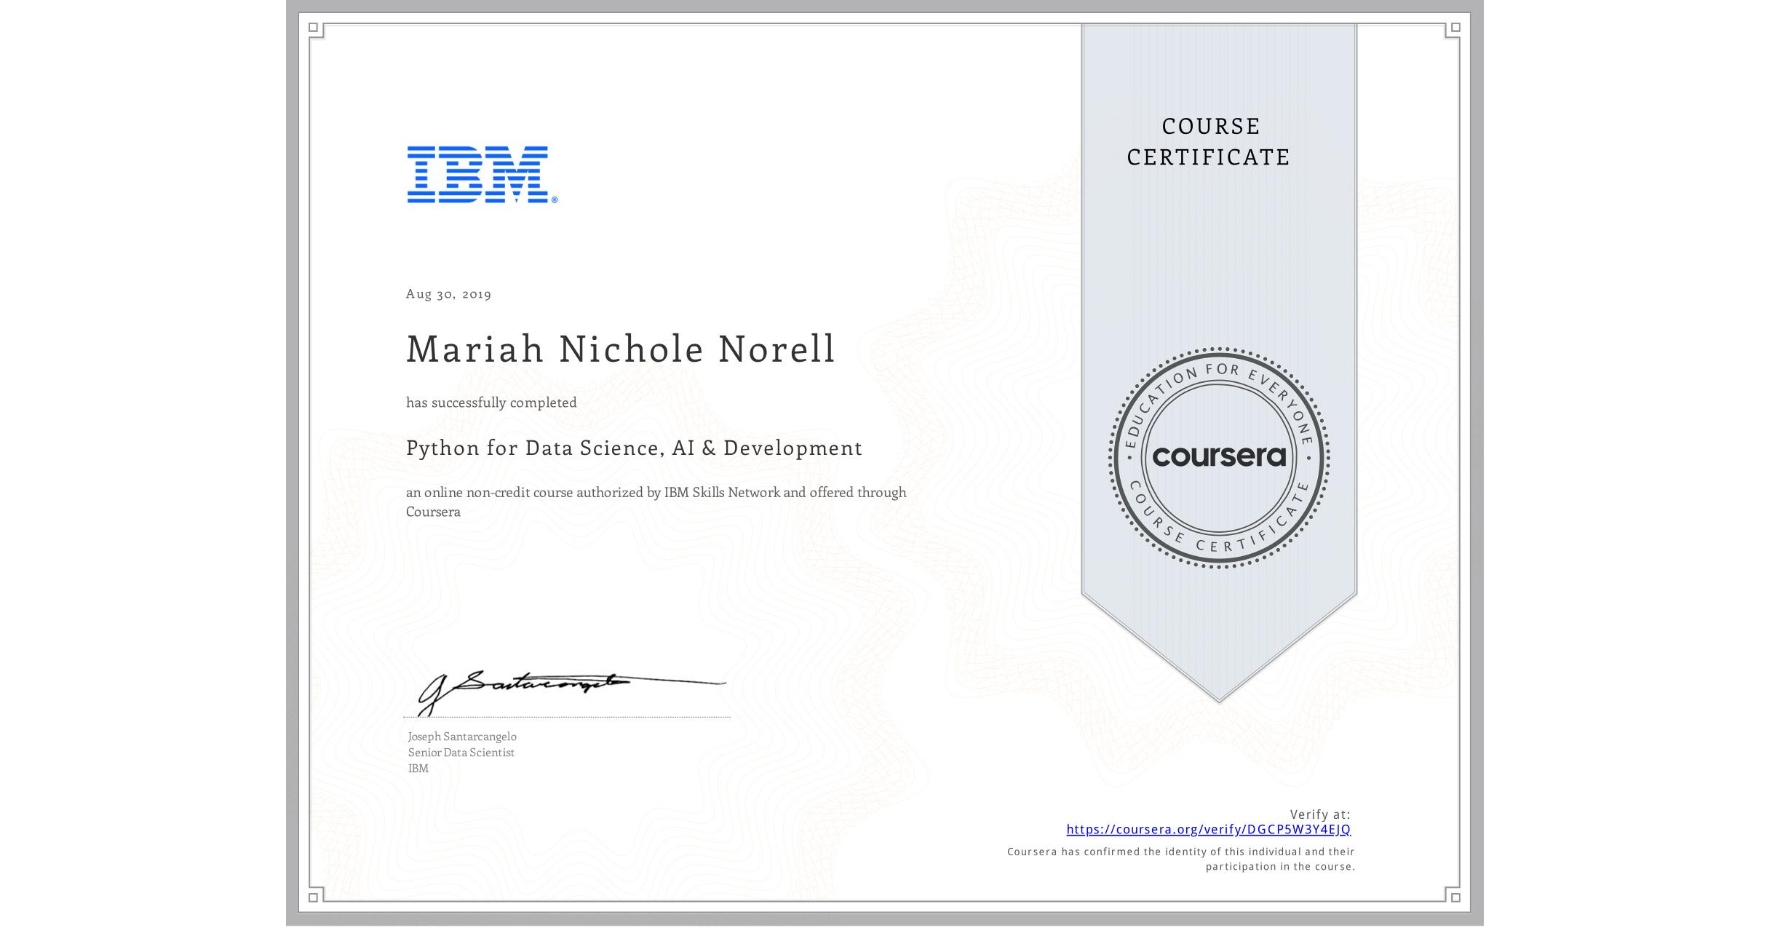 View certificate for Mariah Nichole Norell, Python for Data Science, AI & Development, an online non-credit course authorized by IBM and offered through Coursera